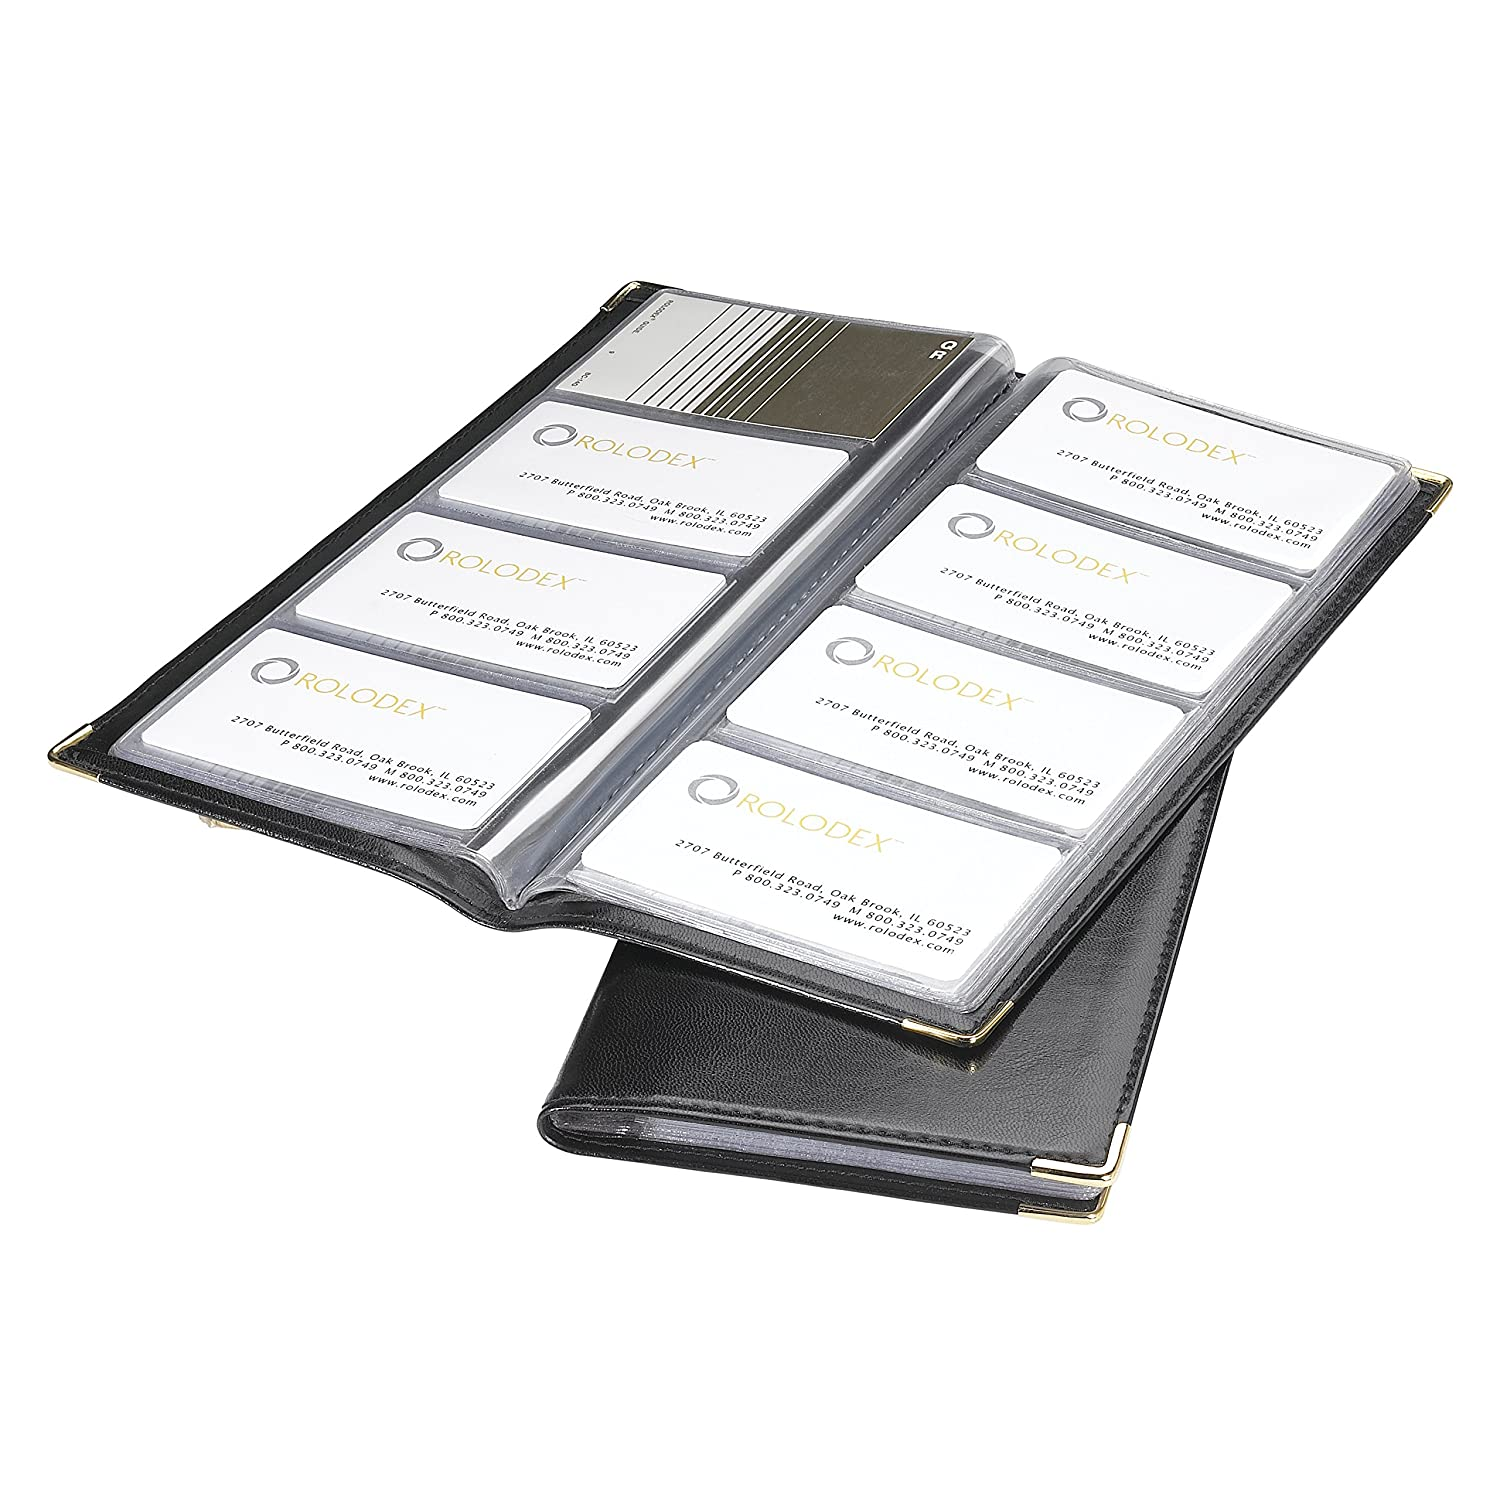 Amazon.com : Rolodex Business Card Book 96-Card, Black and Gold ...